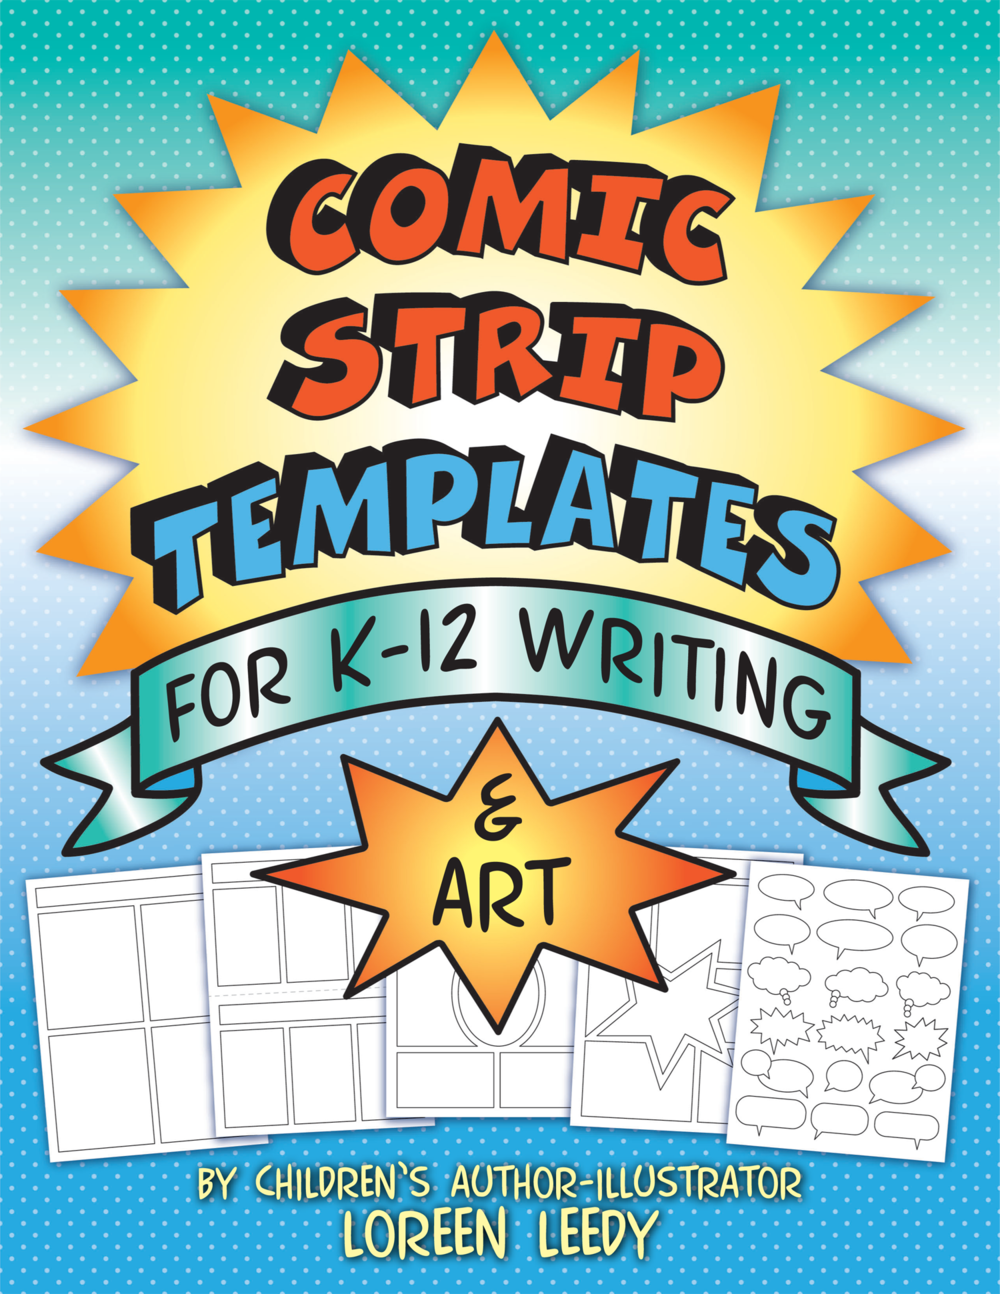 Kids love comics and making their own is a fabulous way to create enthusiasm for writing. The 40+ printable pages provide options to use all year long.